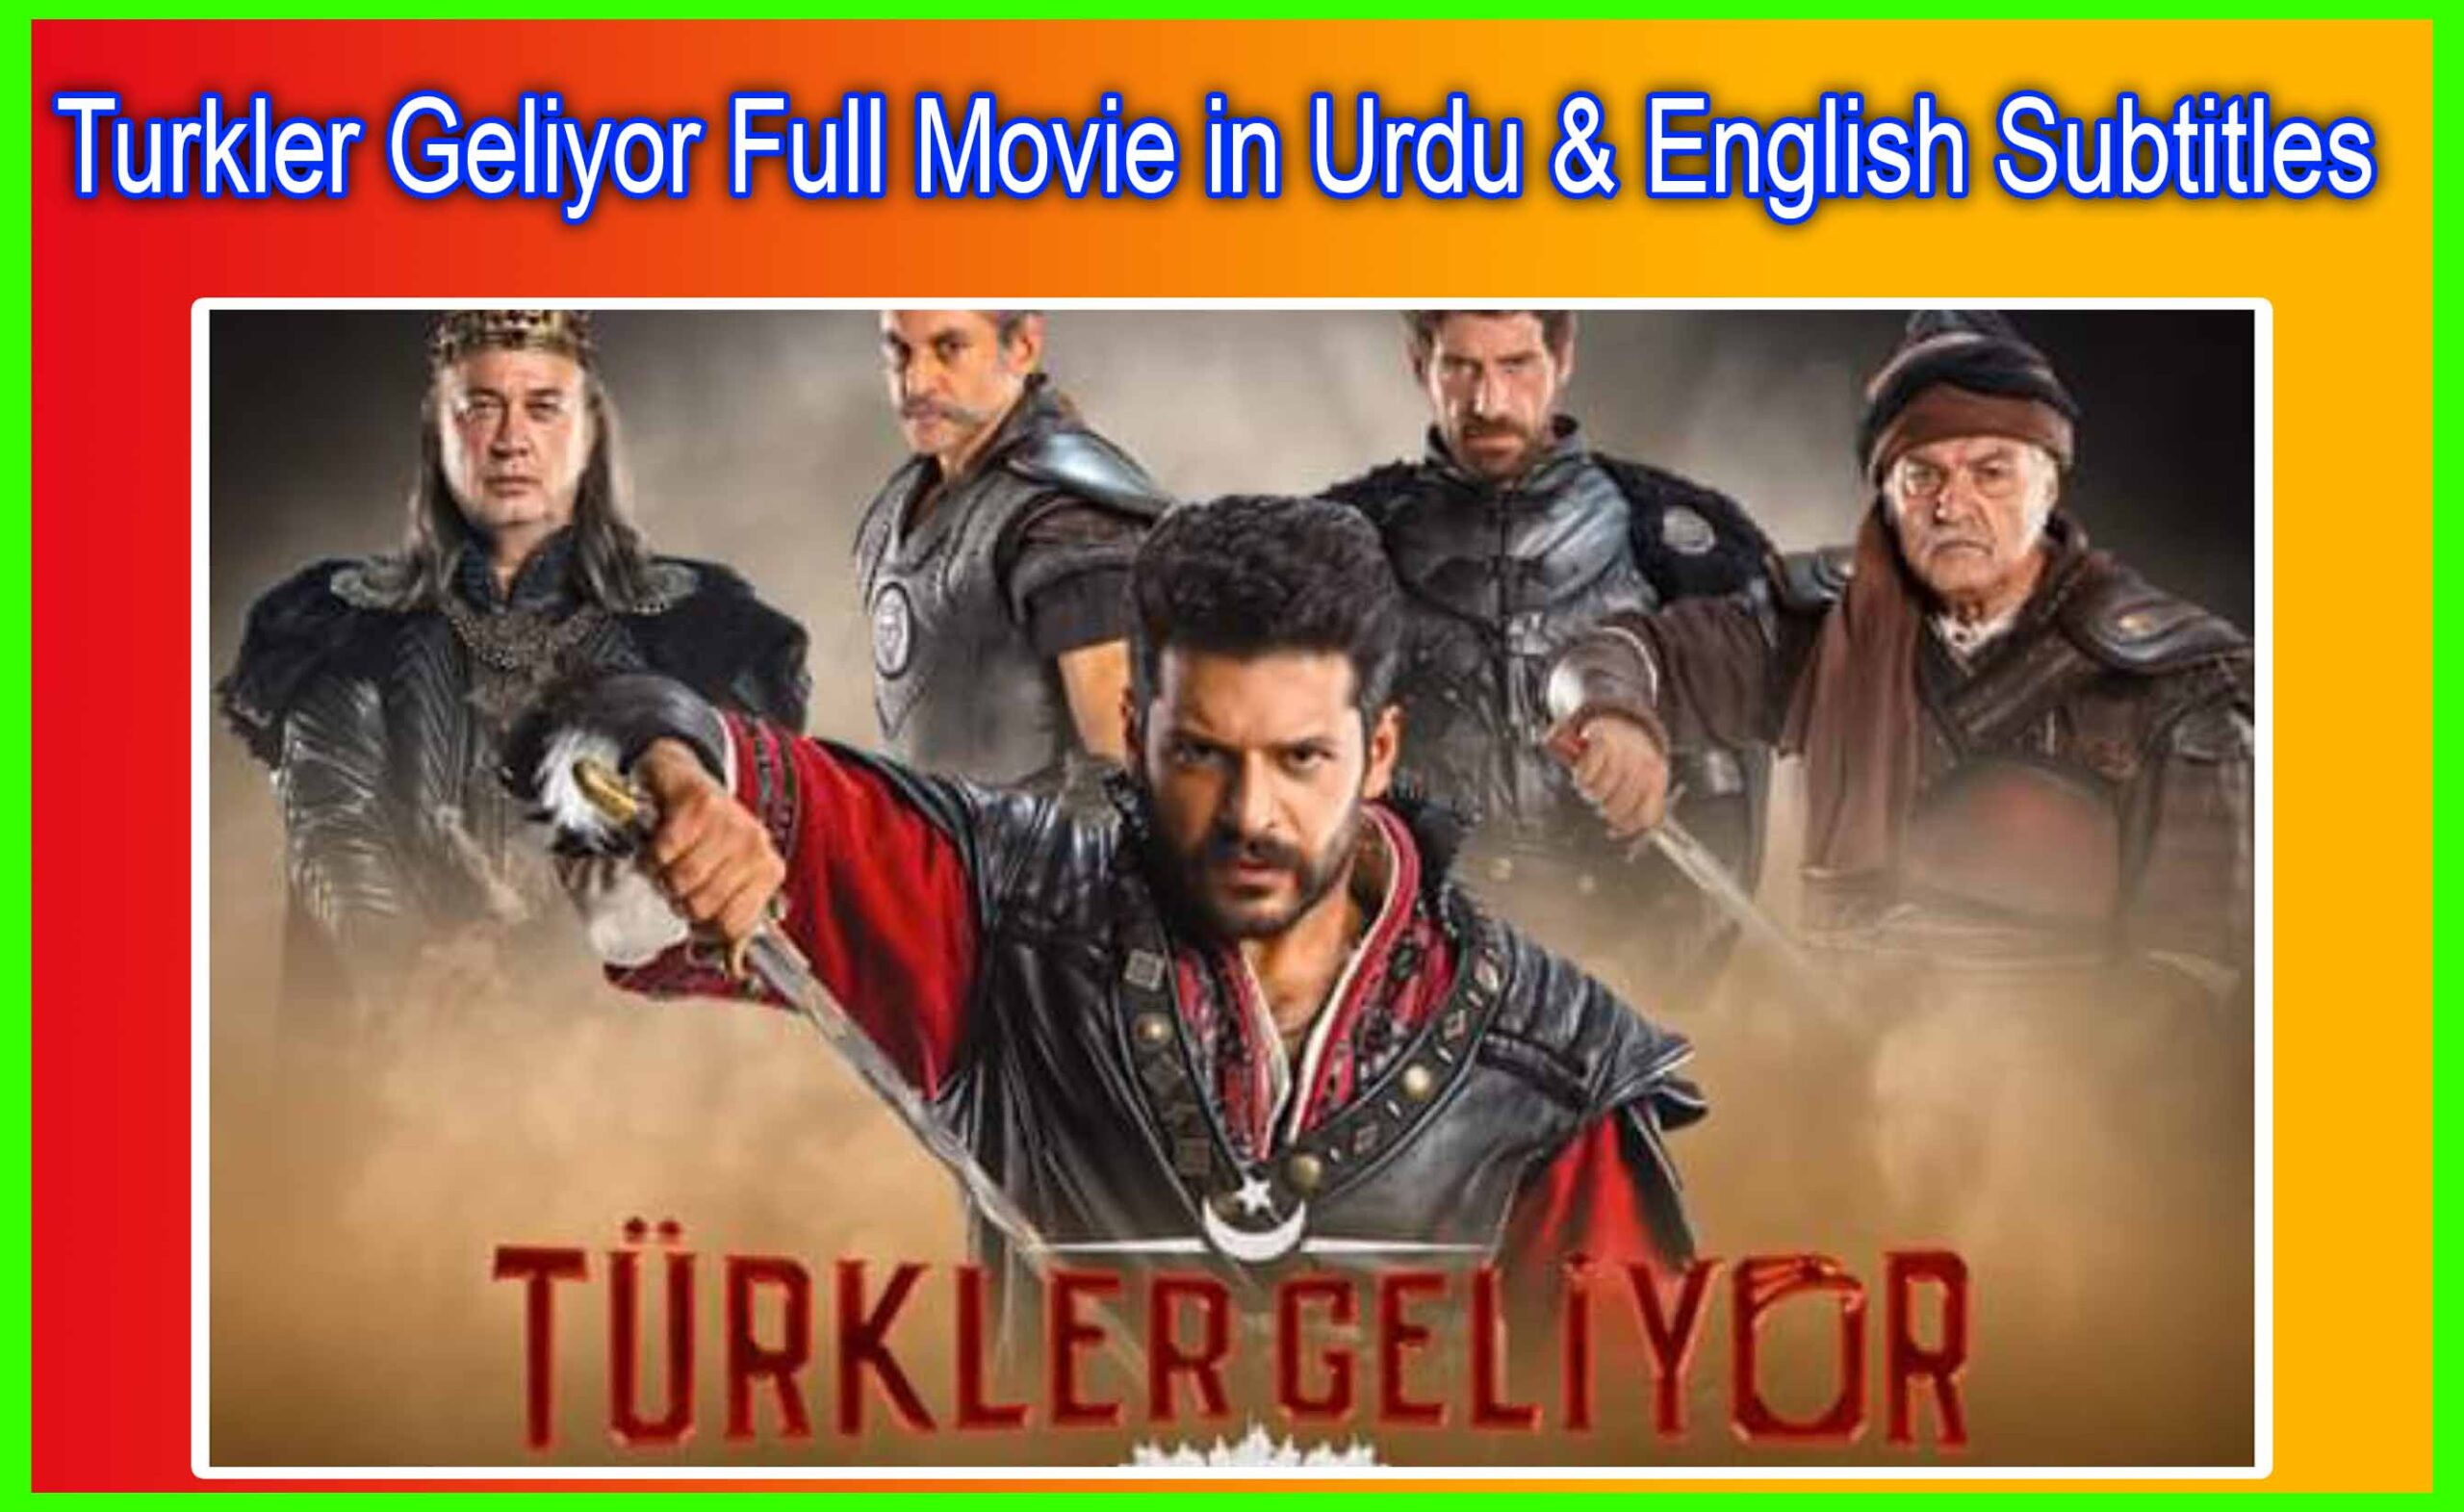 ▷❤️(Turks are Coming) Turkler Geliyor Full Movie in Urdu & English Subtitles Giveme5